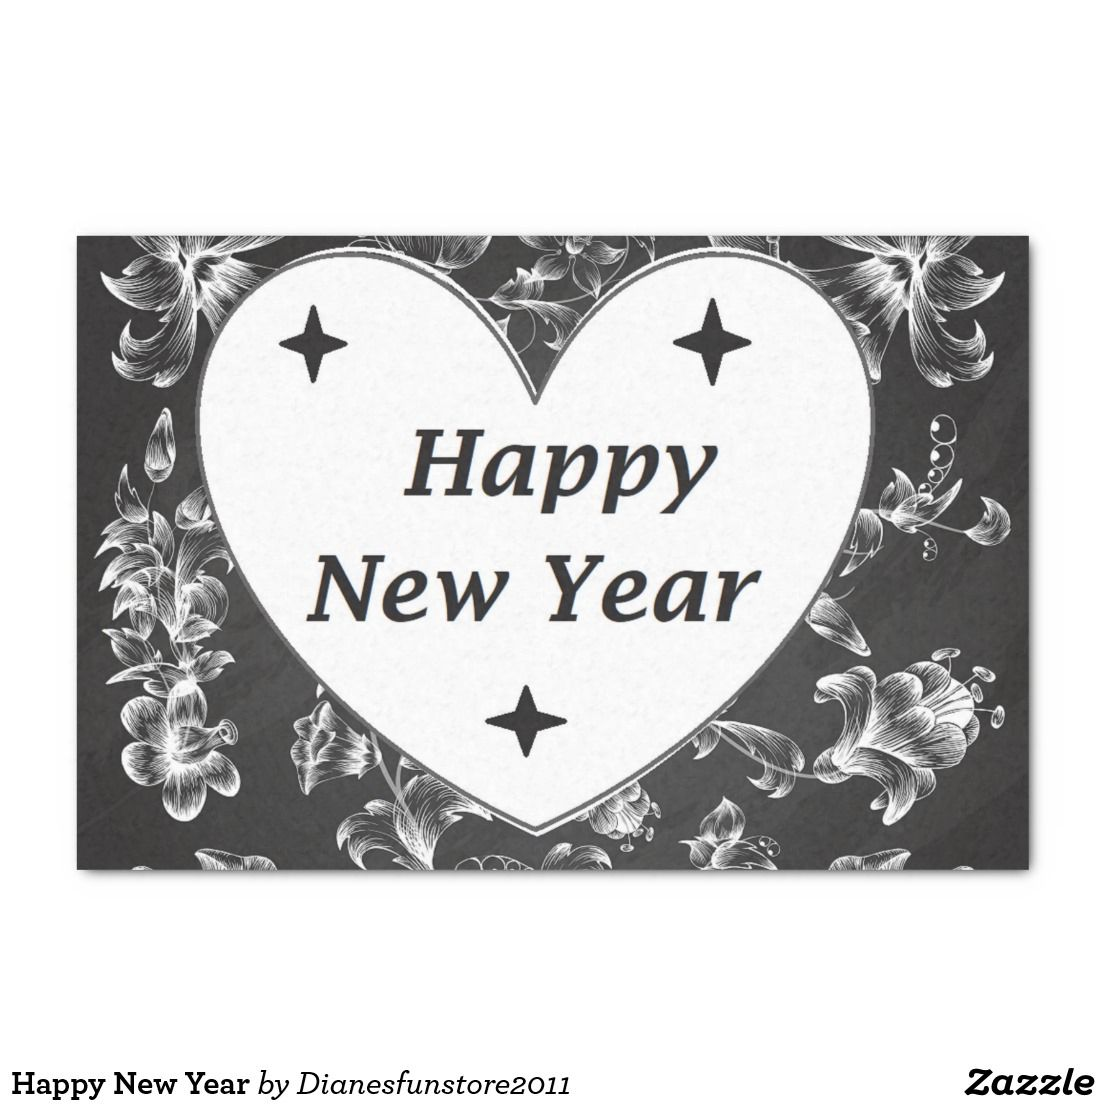 25+ Happy New Year Wishes For Friends And Family [With